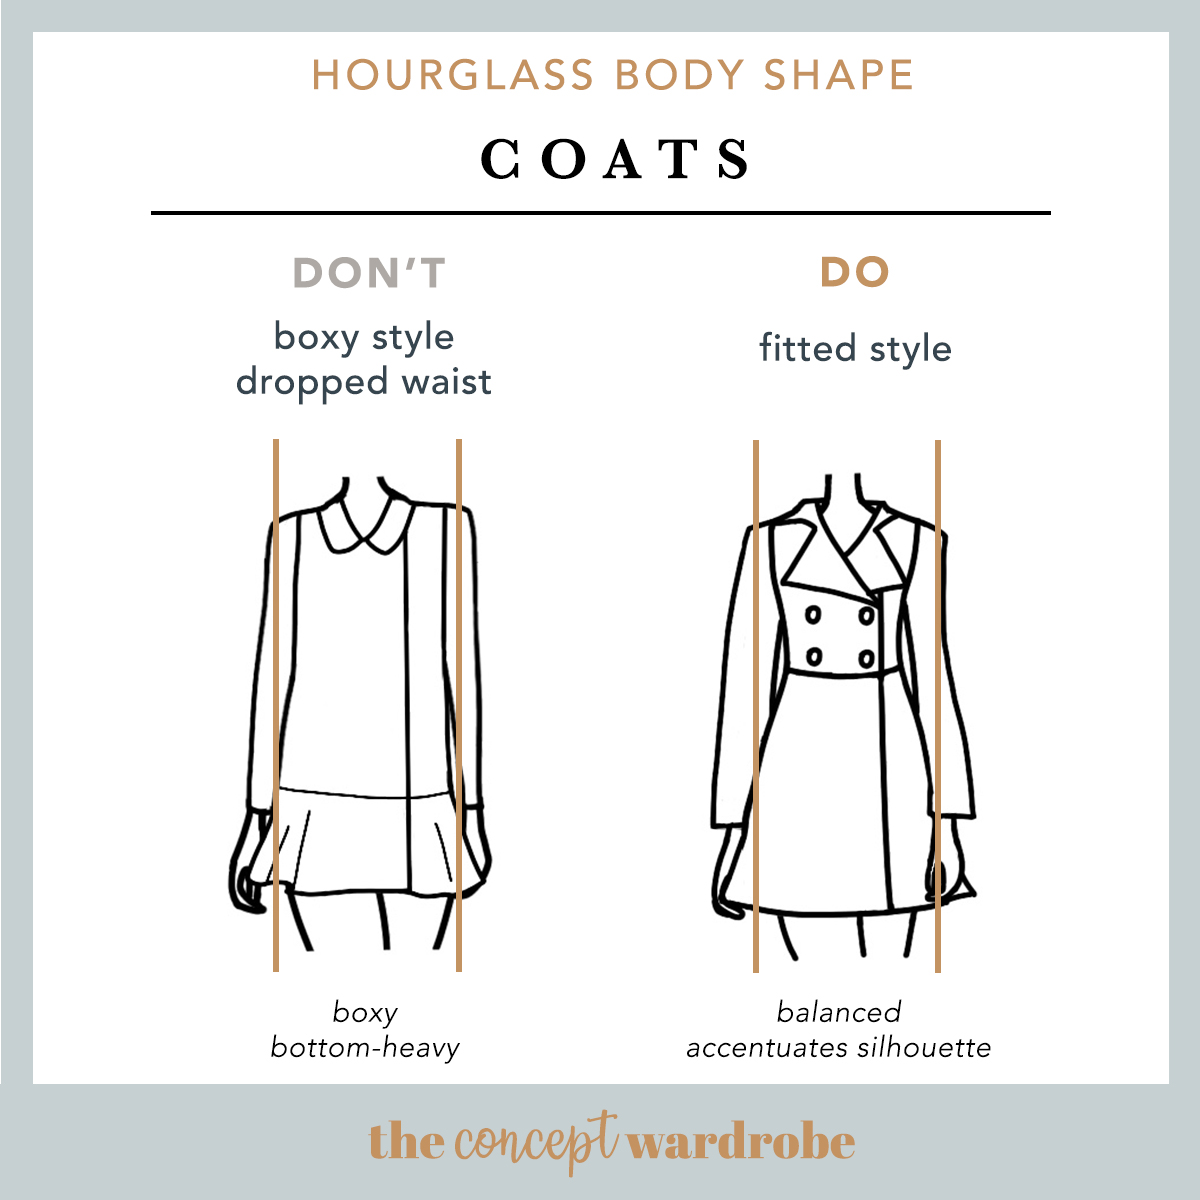 Hourglass Body Shape Coats Do's and Don'ts - the concept wardrobe